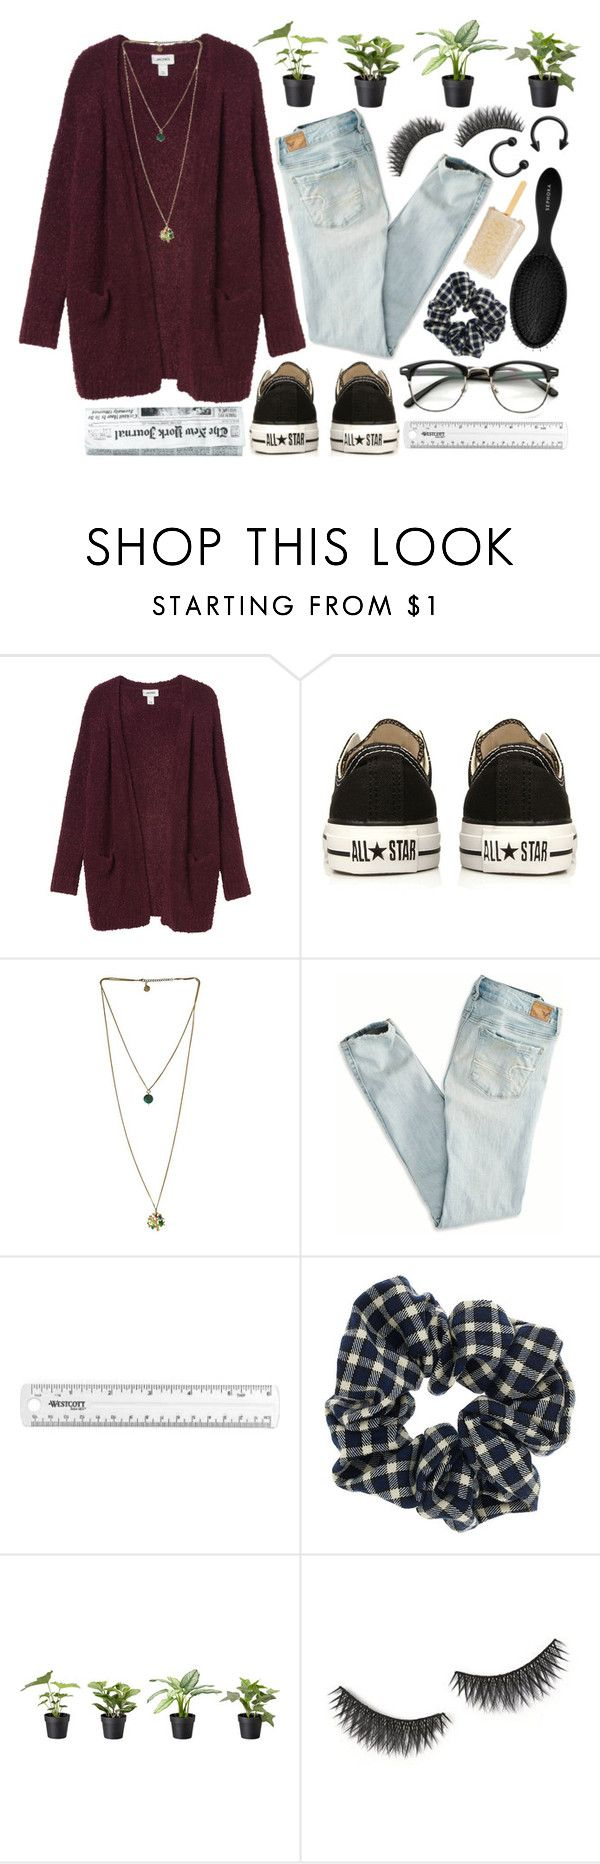 """""""// All the zeros lined up but the number's blocked when you've come undone //"""" by mish-ell ❤ liked on Polyvore featuring Monki, Converse, American Eagle Outfitters, Topshop, shu uemura, Sephora Collection, arcticmonkeys and kneesocks"""